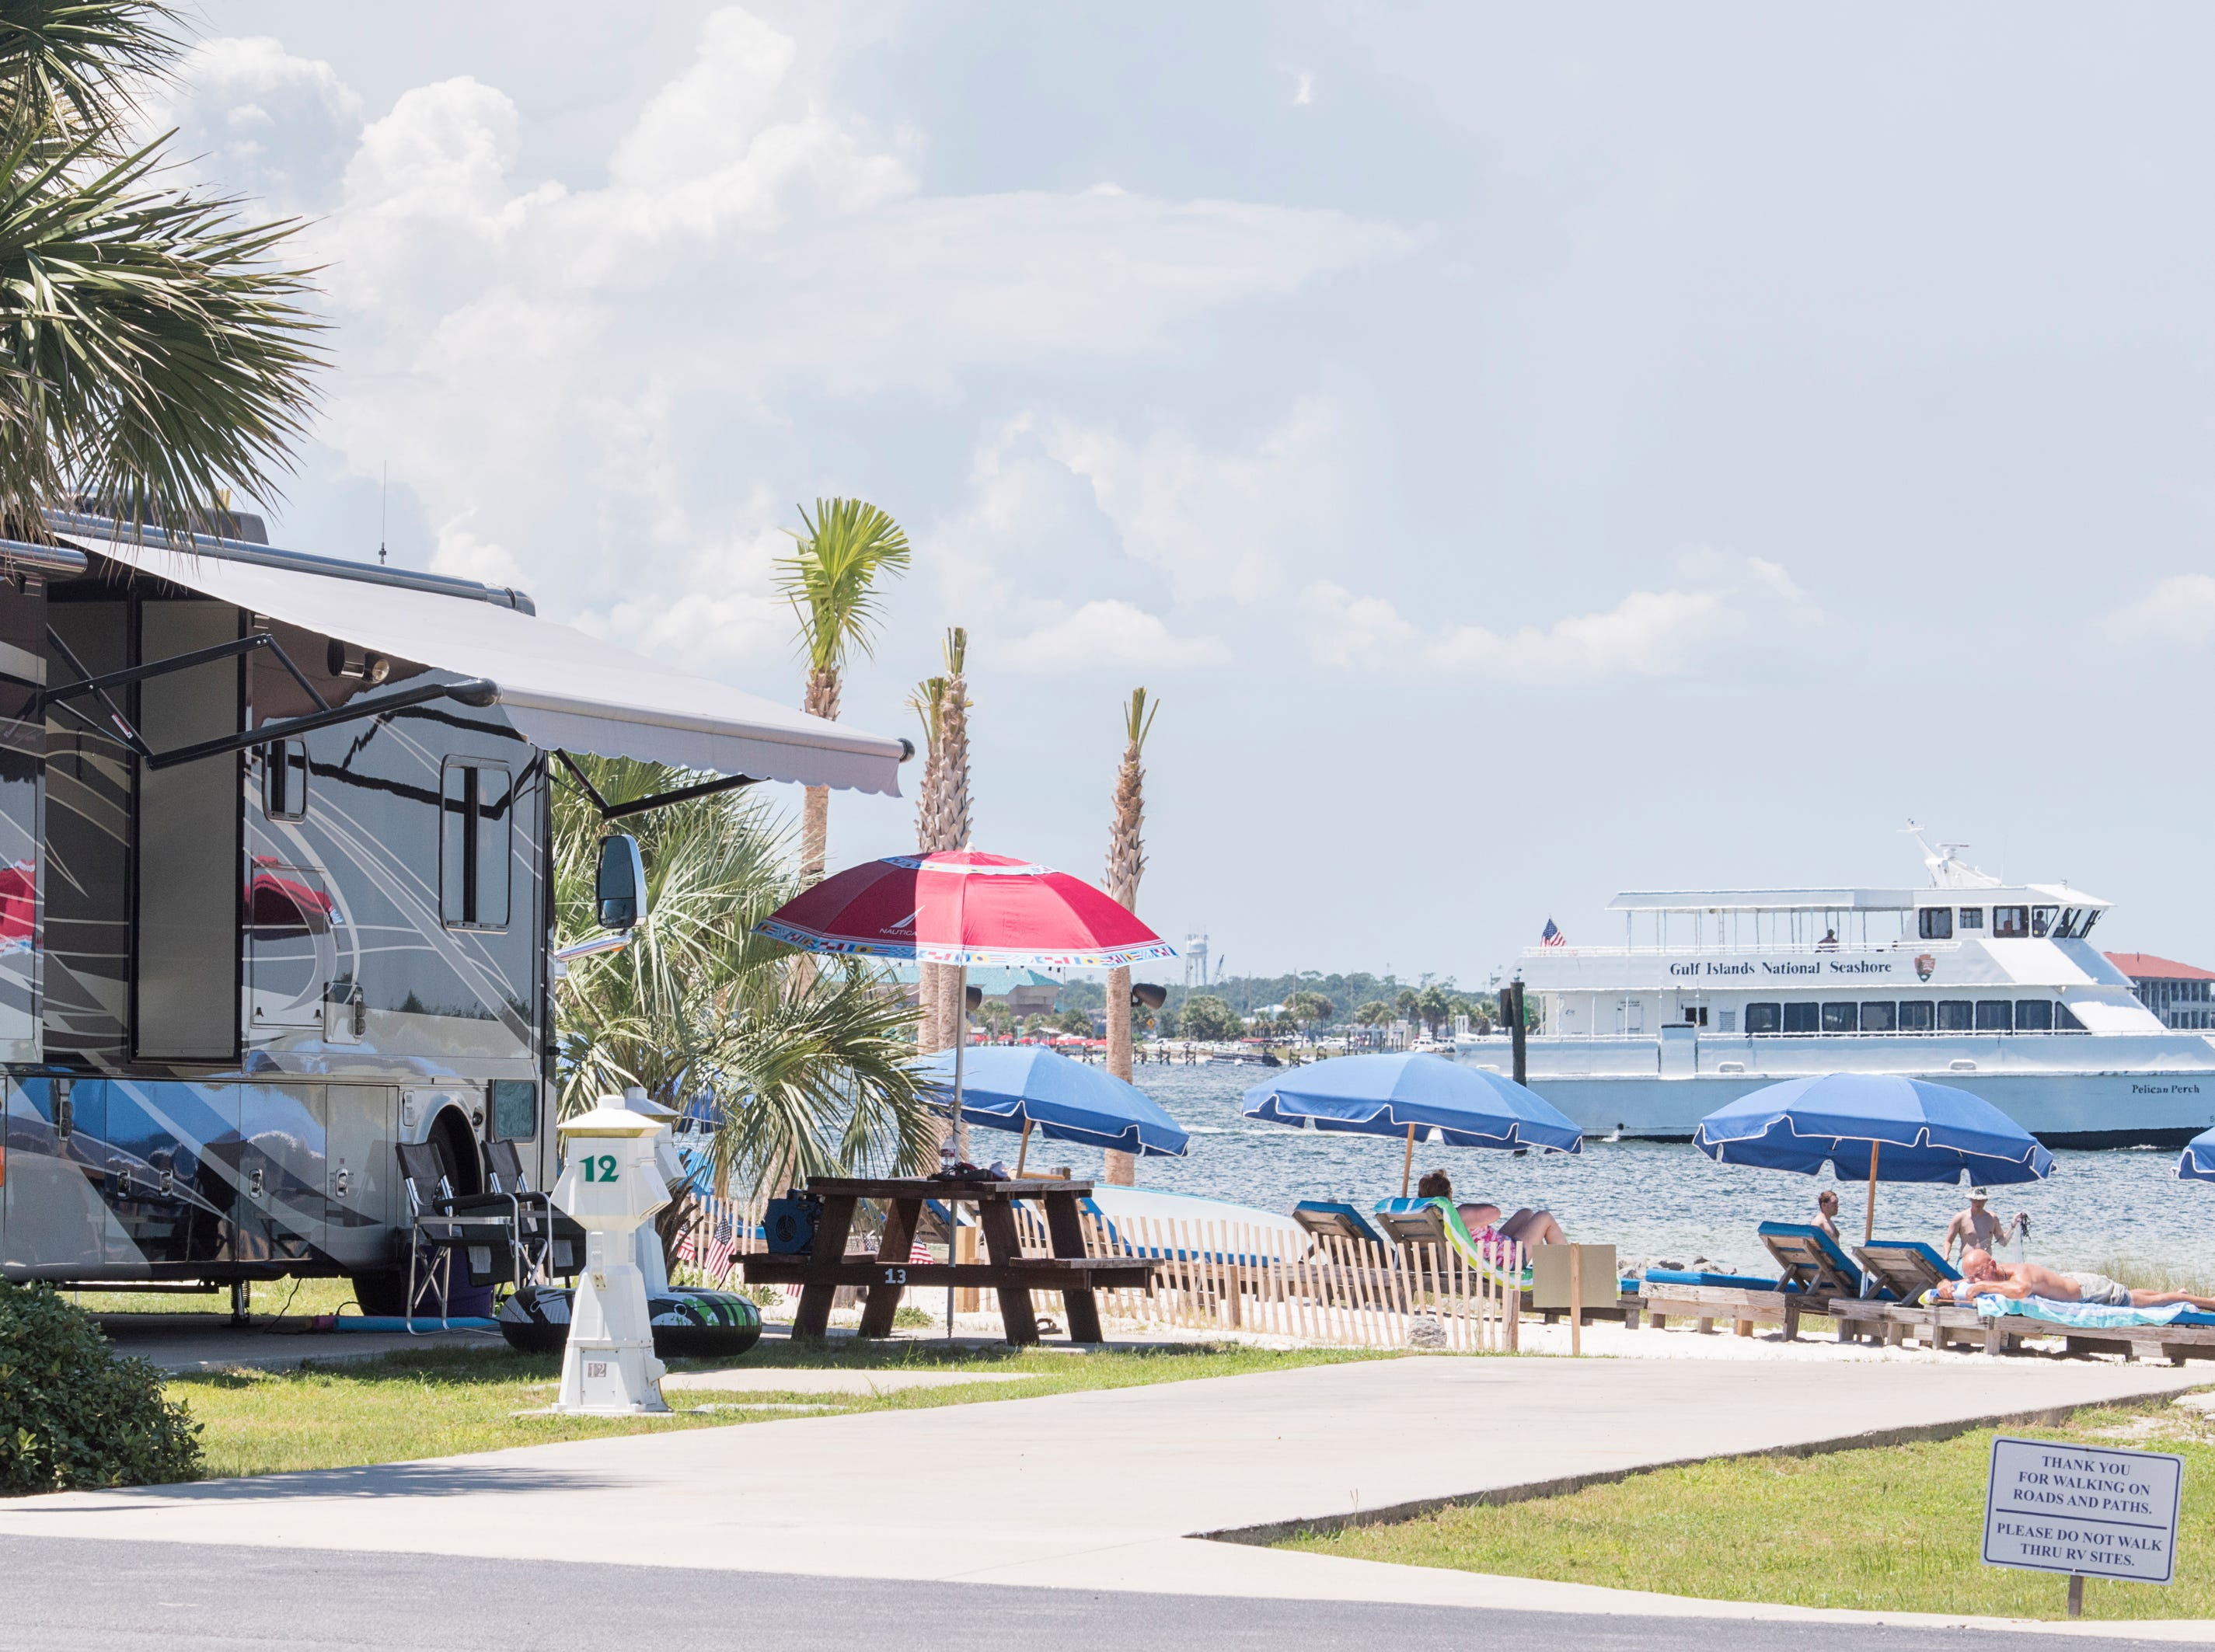 Guests enjoy the sun and sand at the Pensacola Beach RV Resort in Pensacola on Tuesday, August 7, 2018.